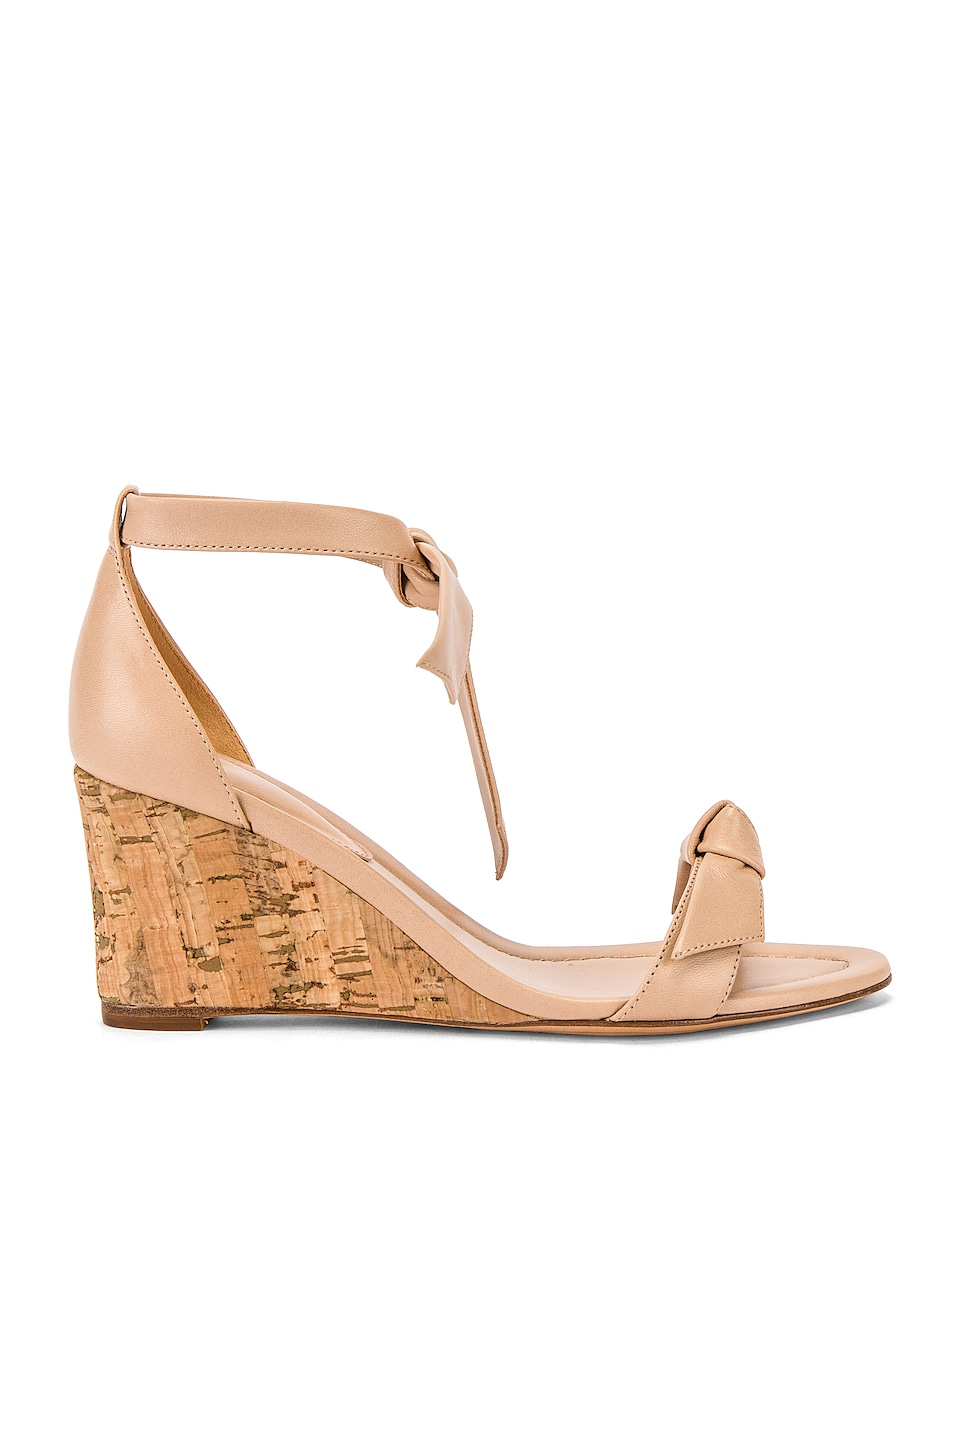 Alexandre Birman Clarita Wedge in Light Sand & Natural